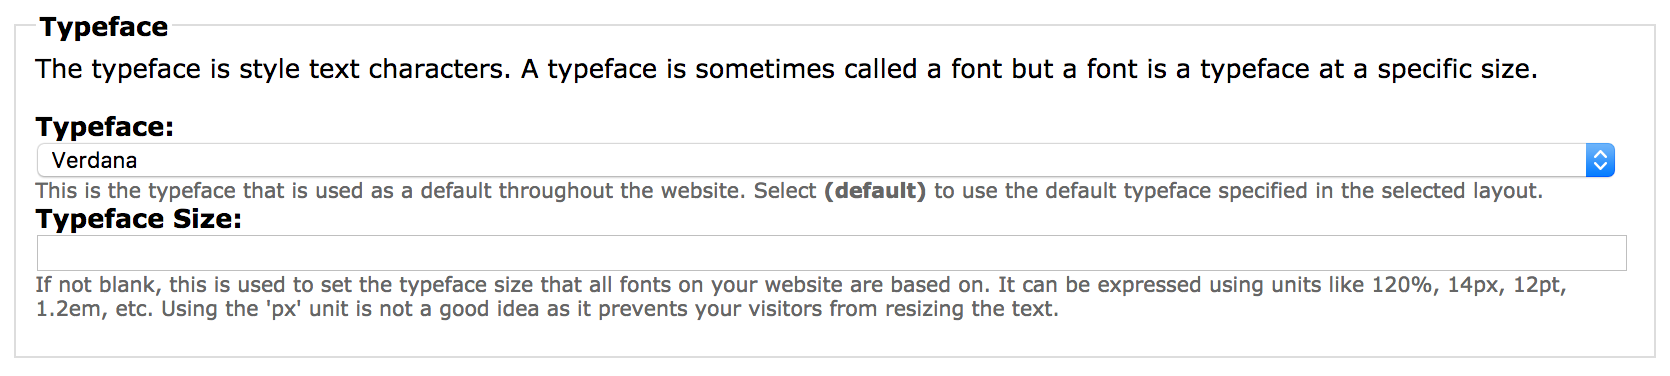 Default Font Typeface Section